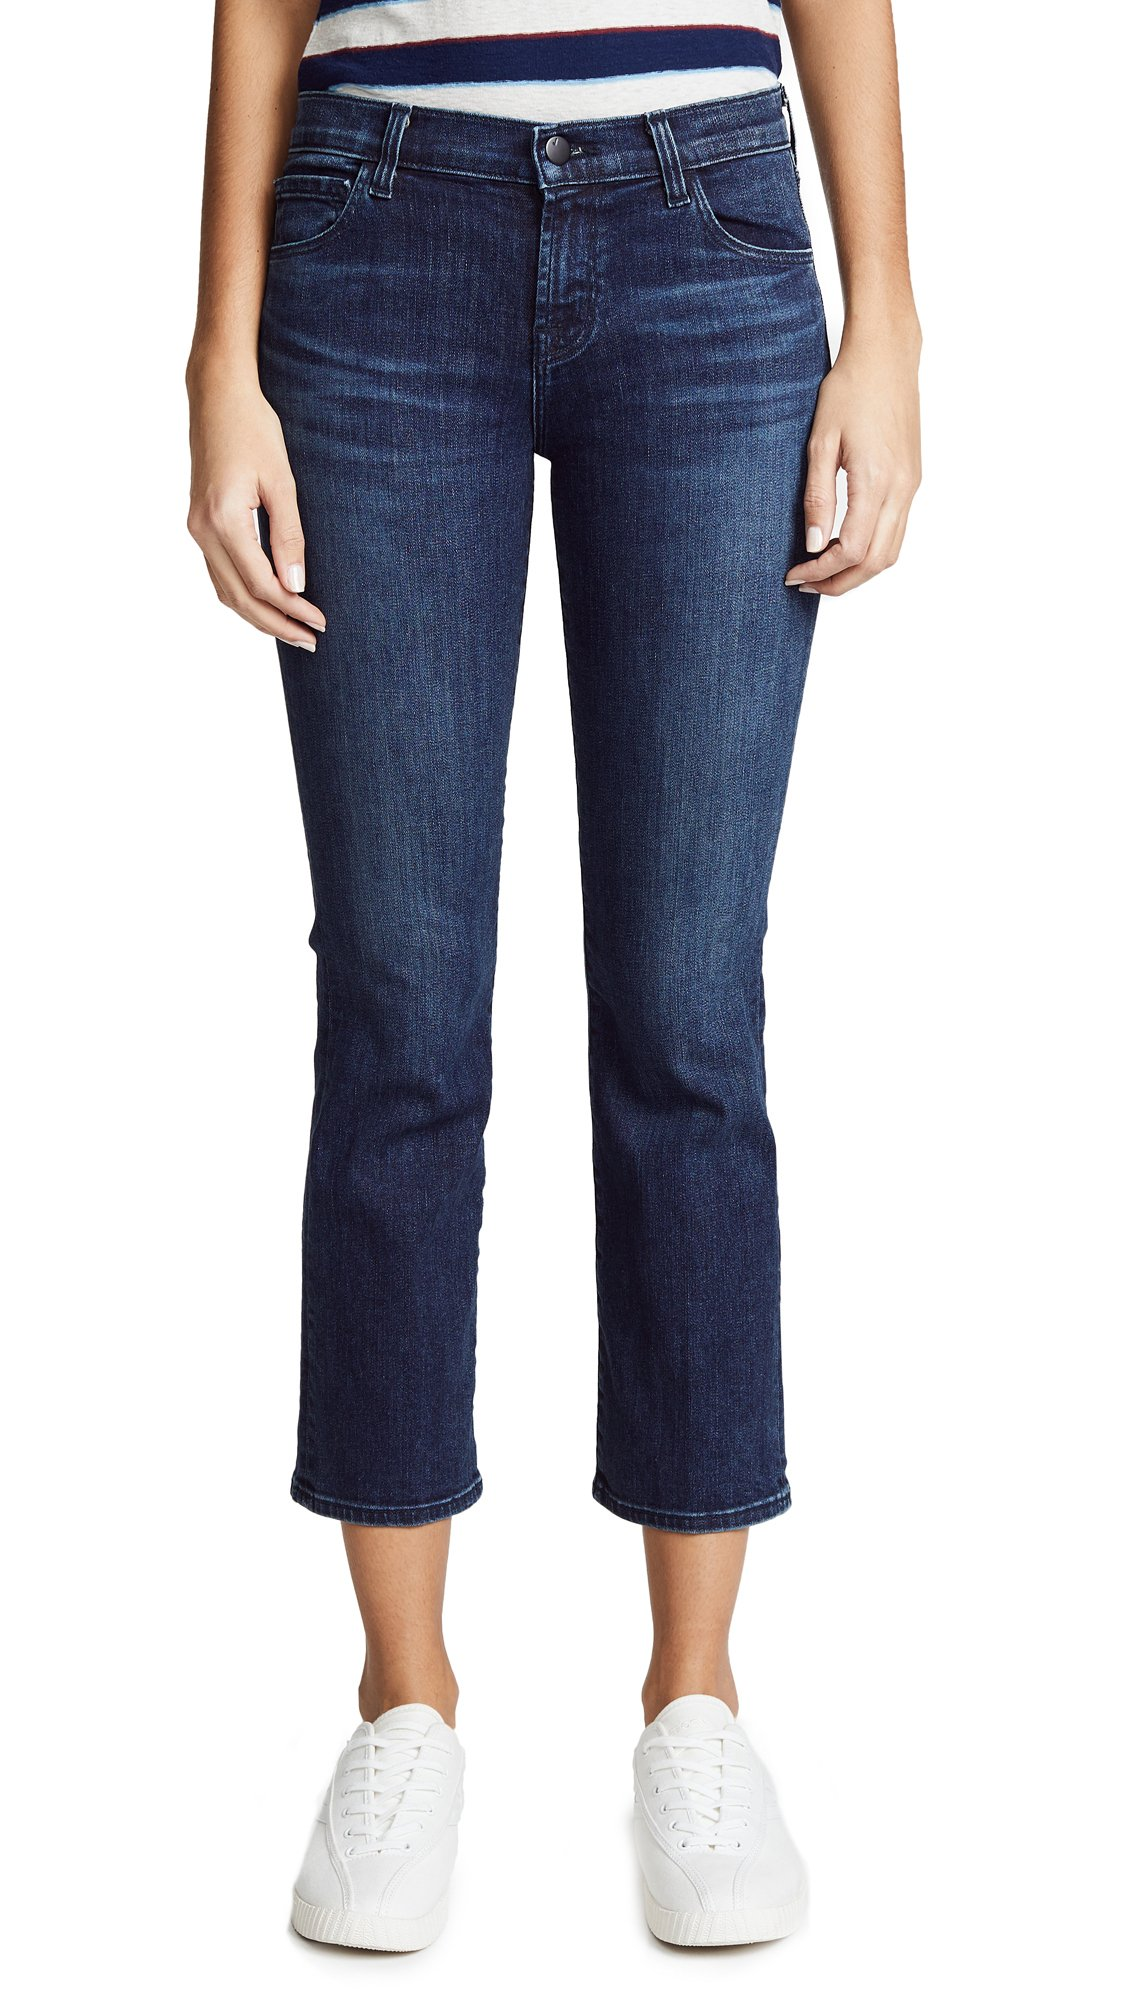 J Brand Women's Selena Mid Rise Crop Boot Jeans, Unbound, 23